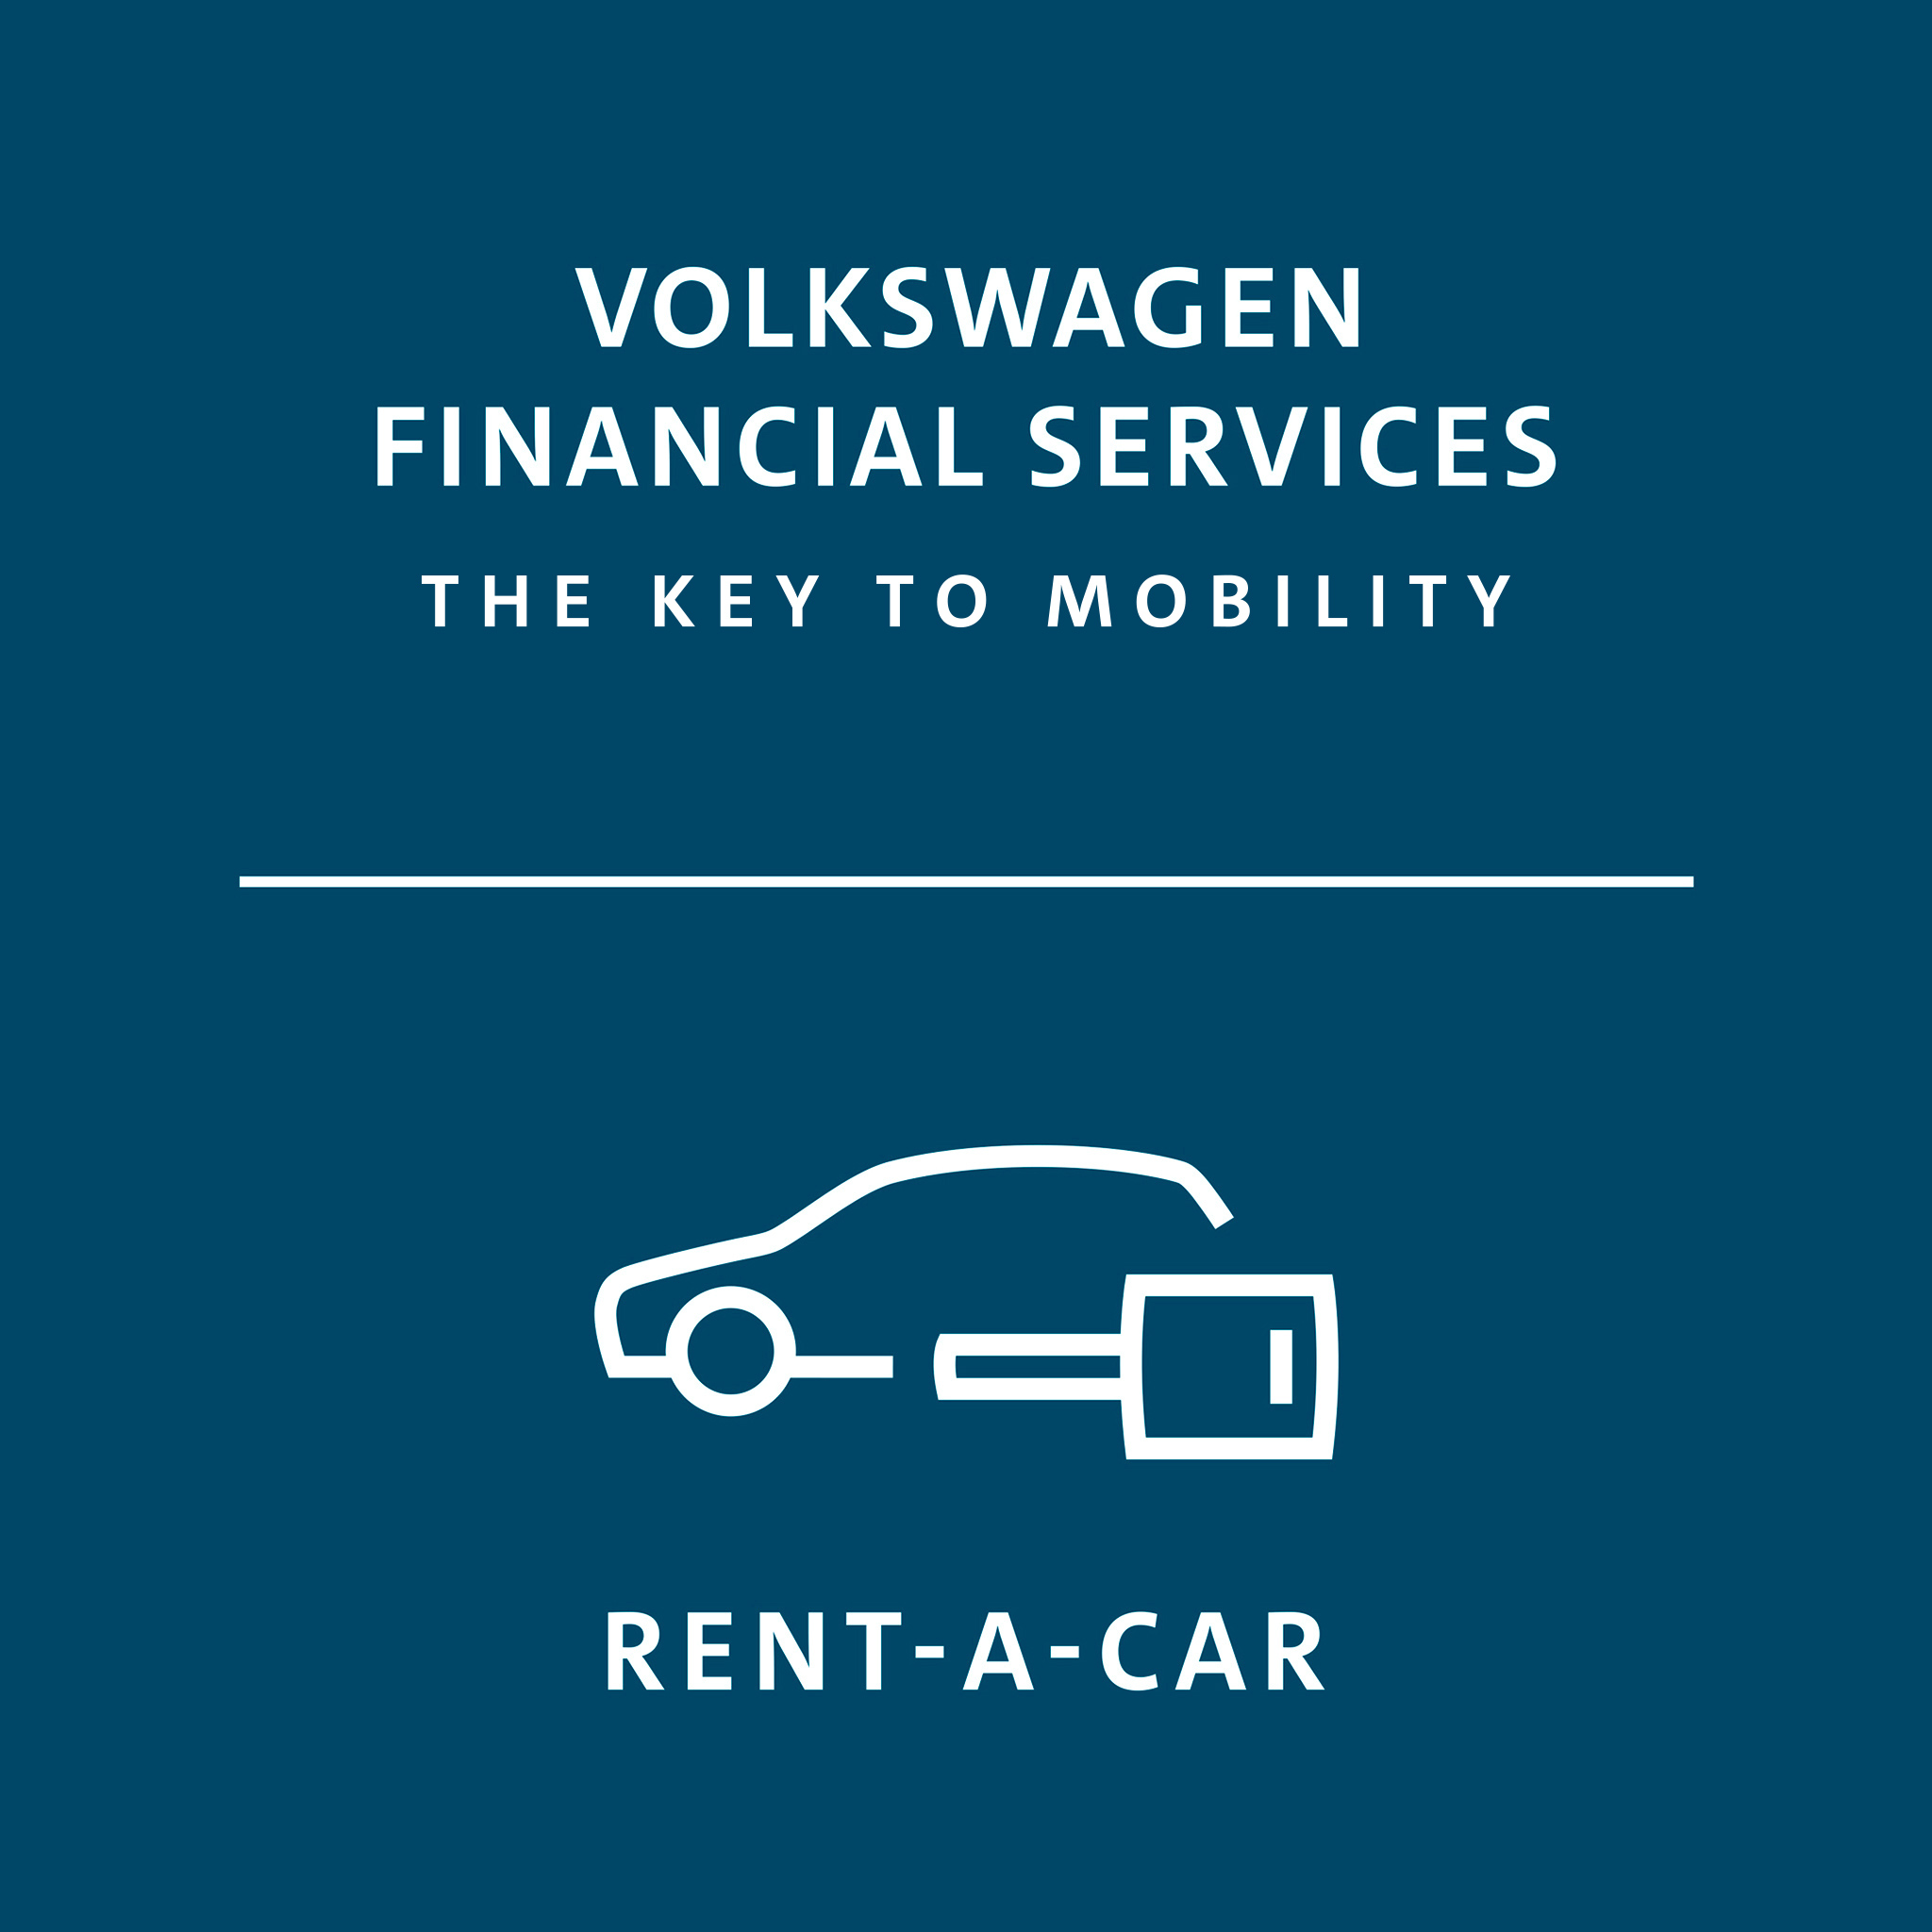 VW FS Rent-a-Car - Frankfurt West - Audi Zentrum